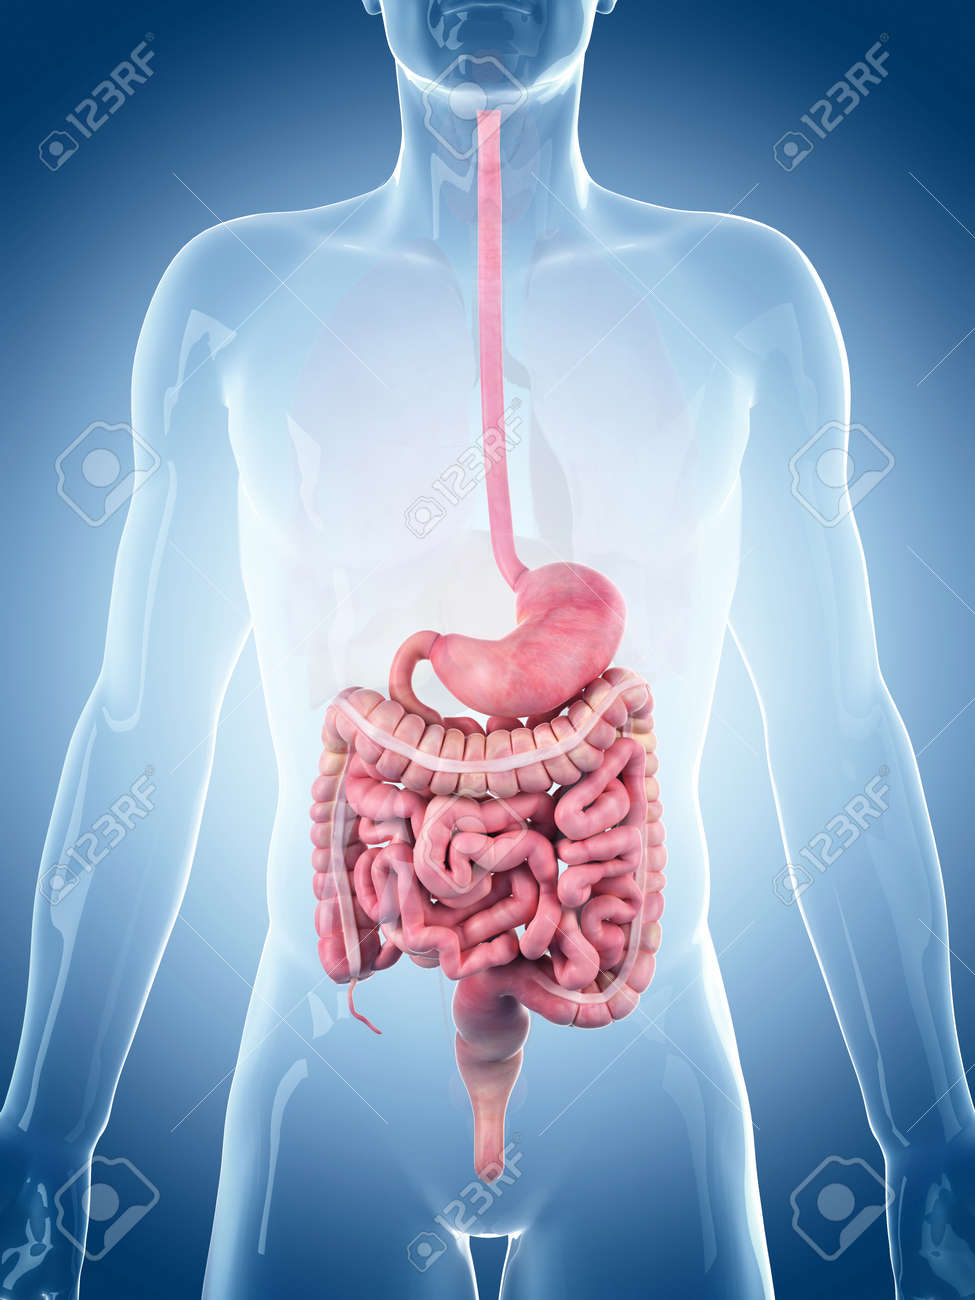 medically accurate illustration of the digestive system Stock Illustration - 45345847